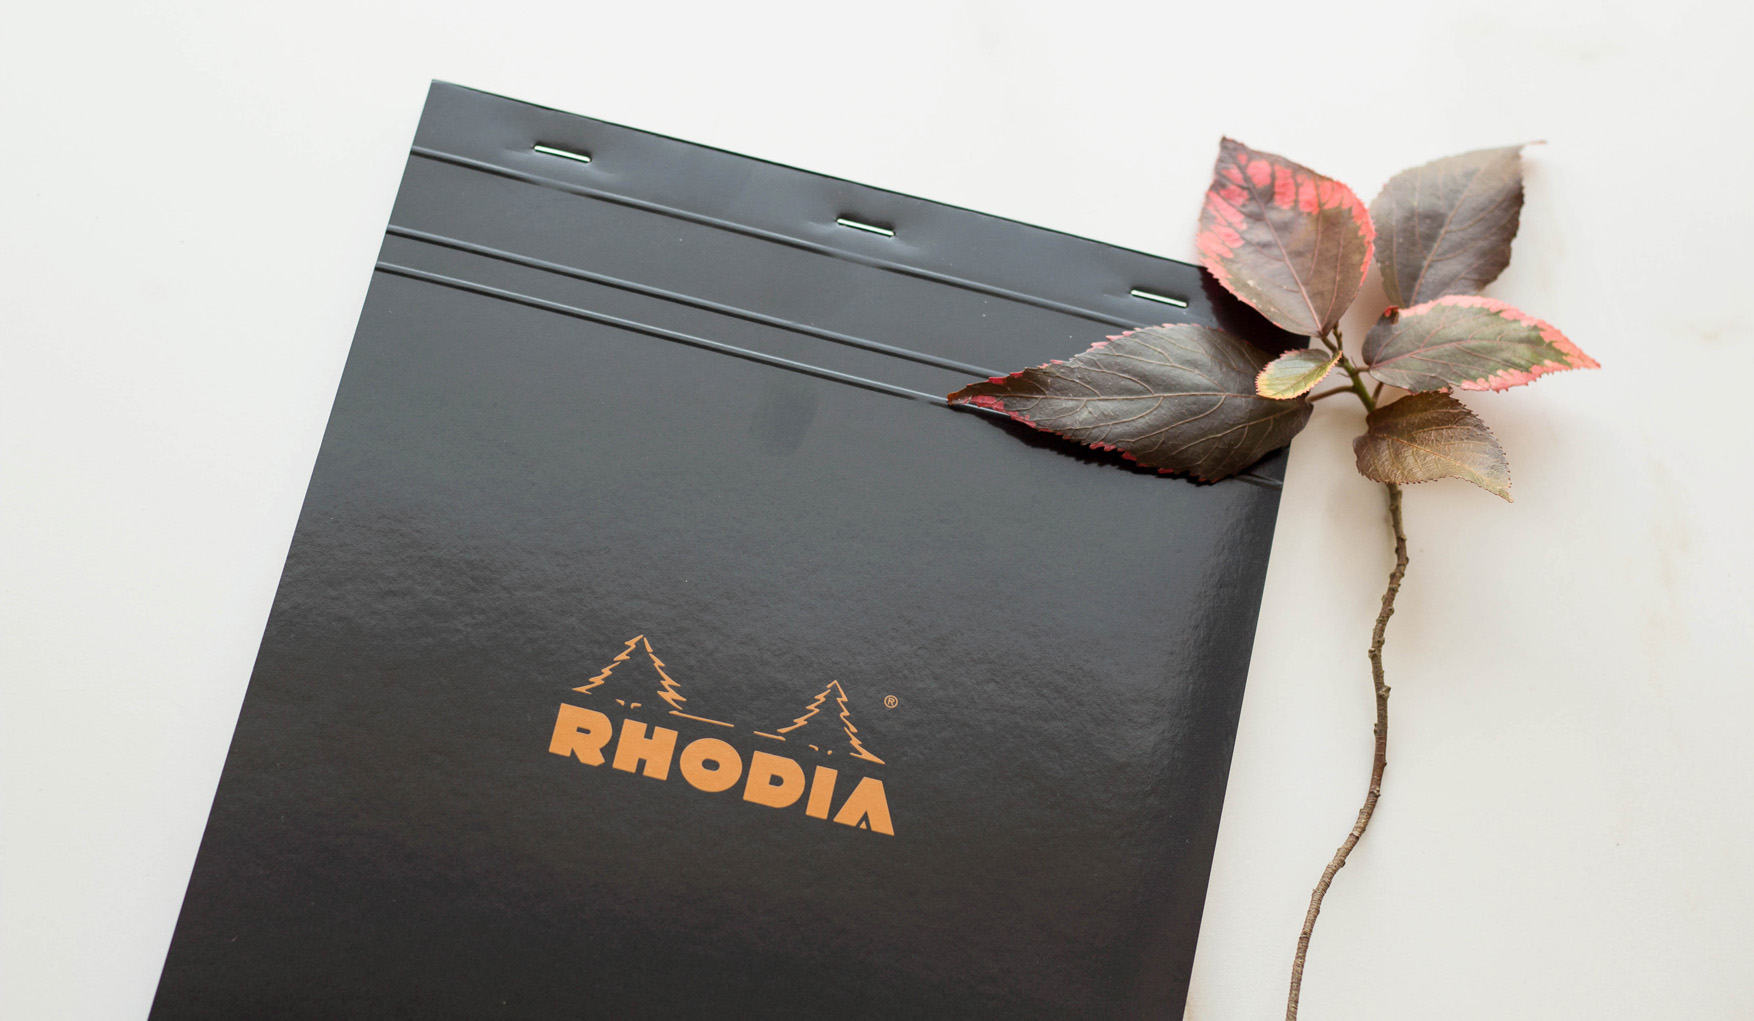 Rhodia is known for high quality, exacting standards and timeless design. It is closely associated with creativity and innovation coupled with tradition.